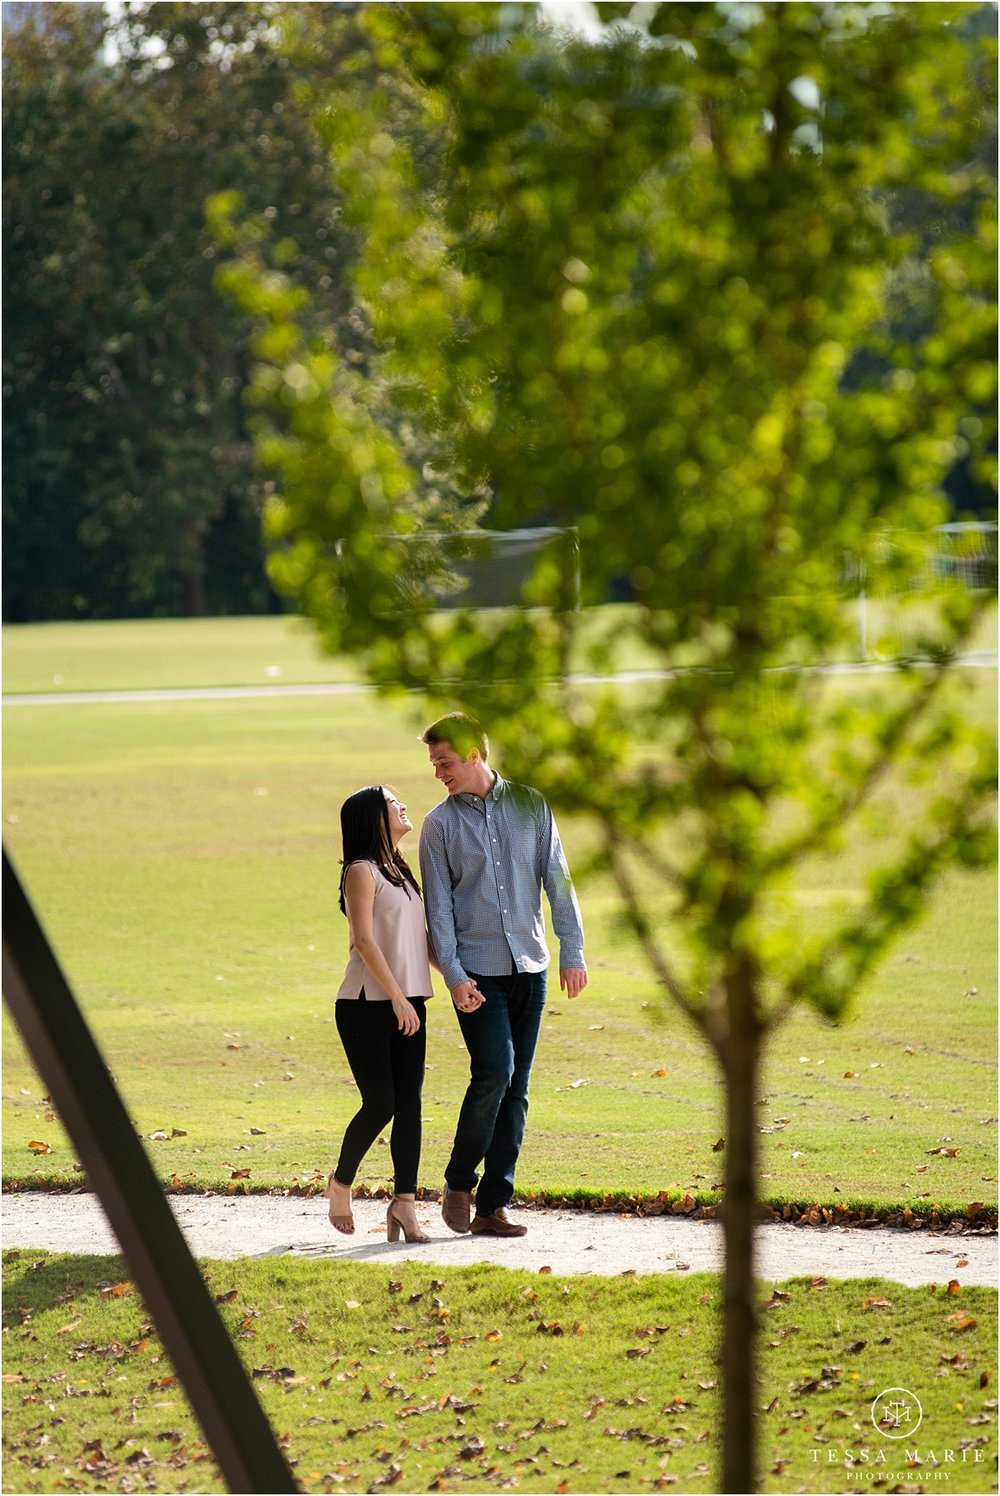 Tessa_marie_photography_wedding_photographer_engagement_pictures_piedmont_park_0008.jpg